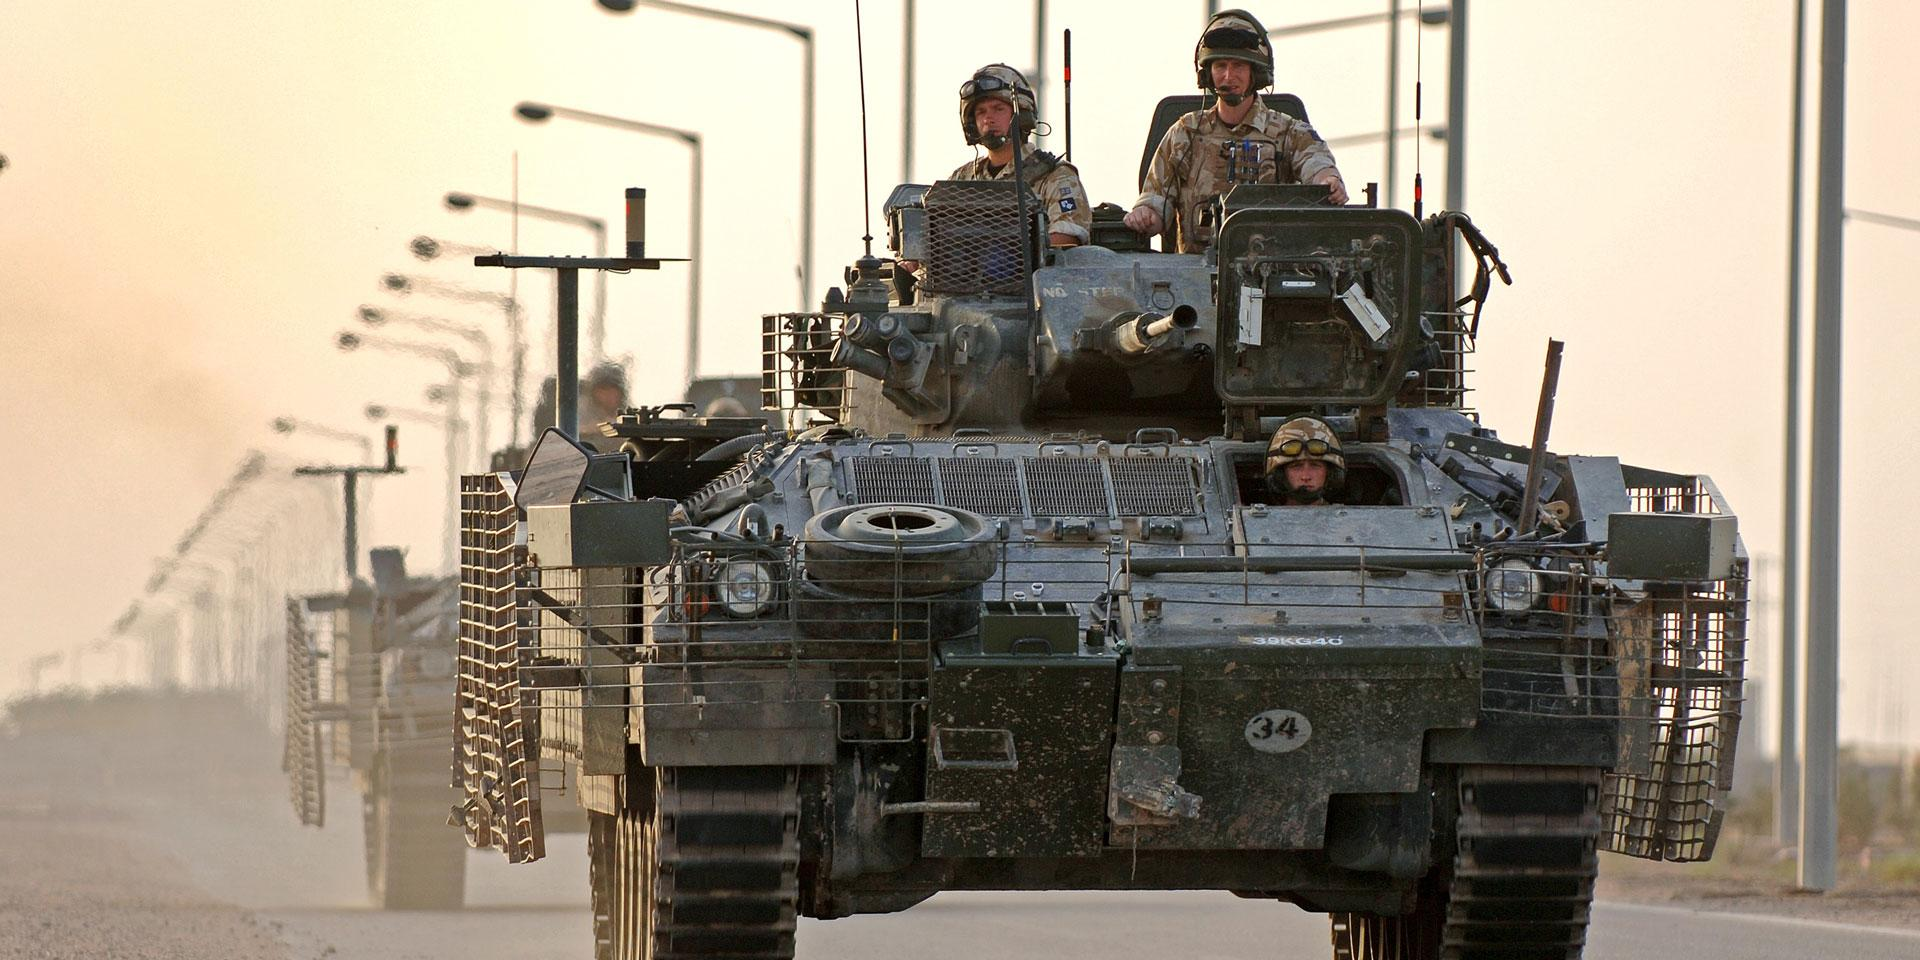 1st Battalion, The Princess of Wales's Royal Regiment depart Basra Air Station in their Warrior vehicles, 2006